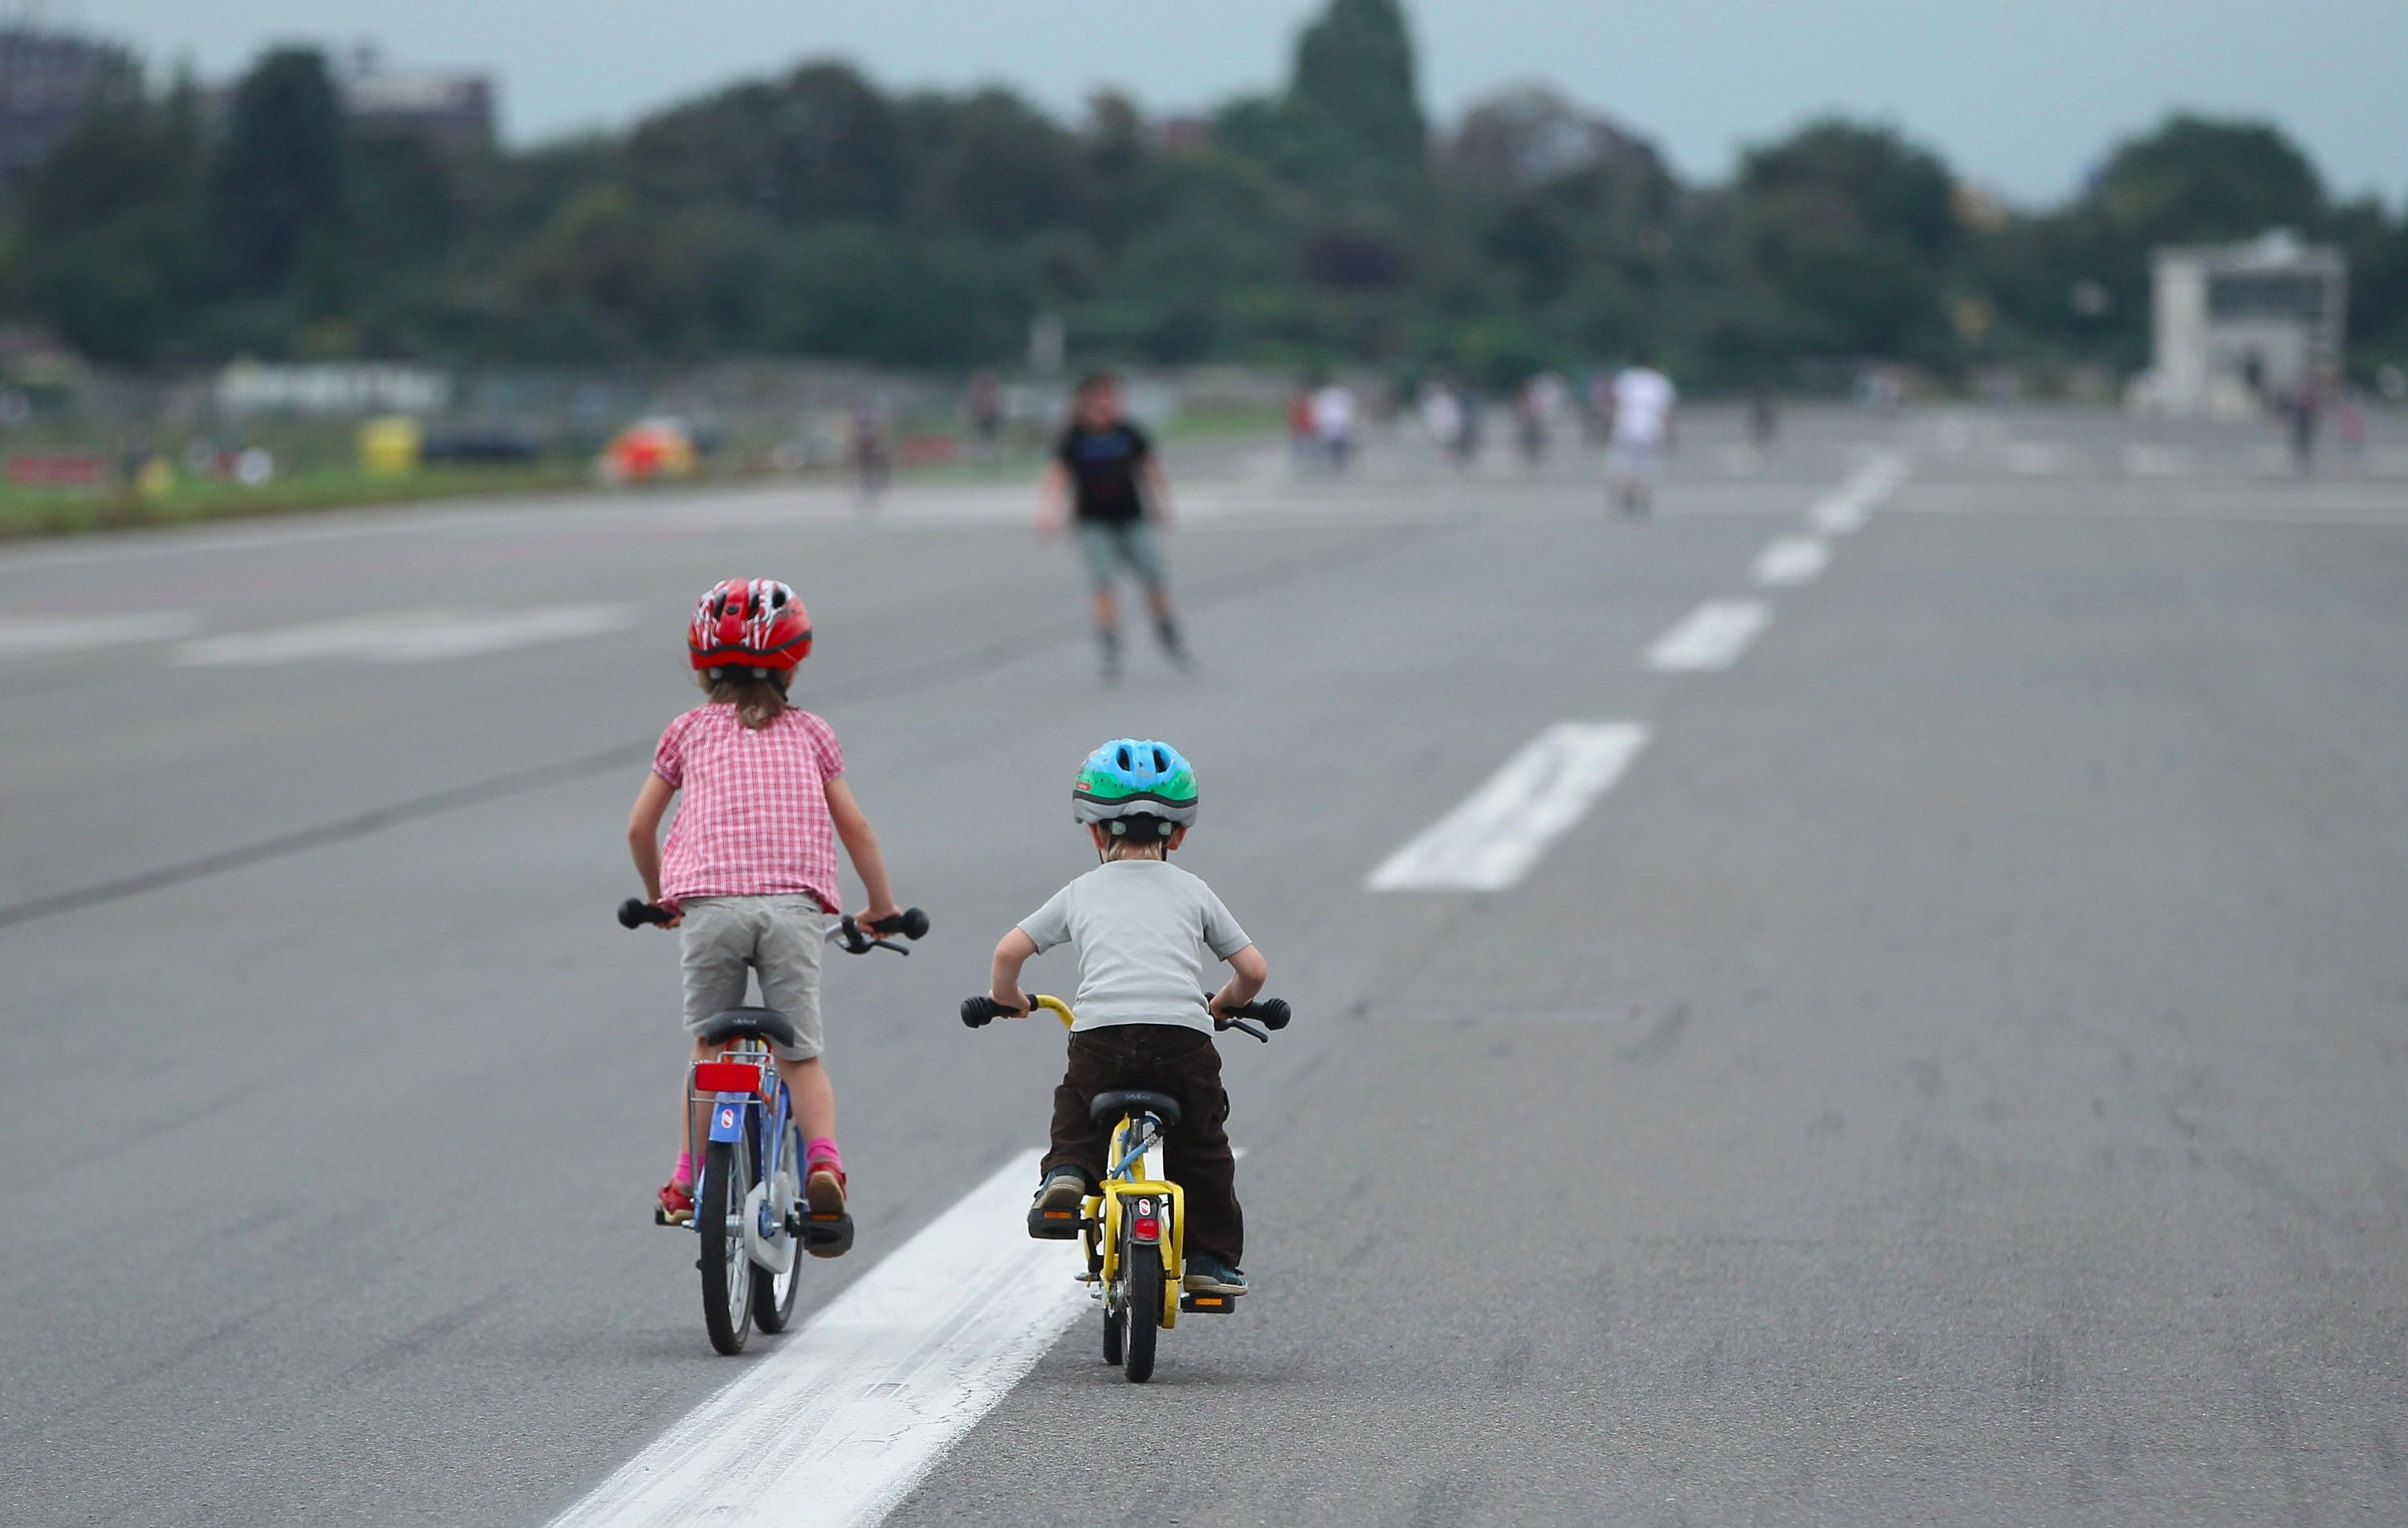 Children biking in the road in Berlin.